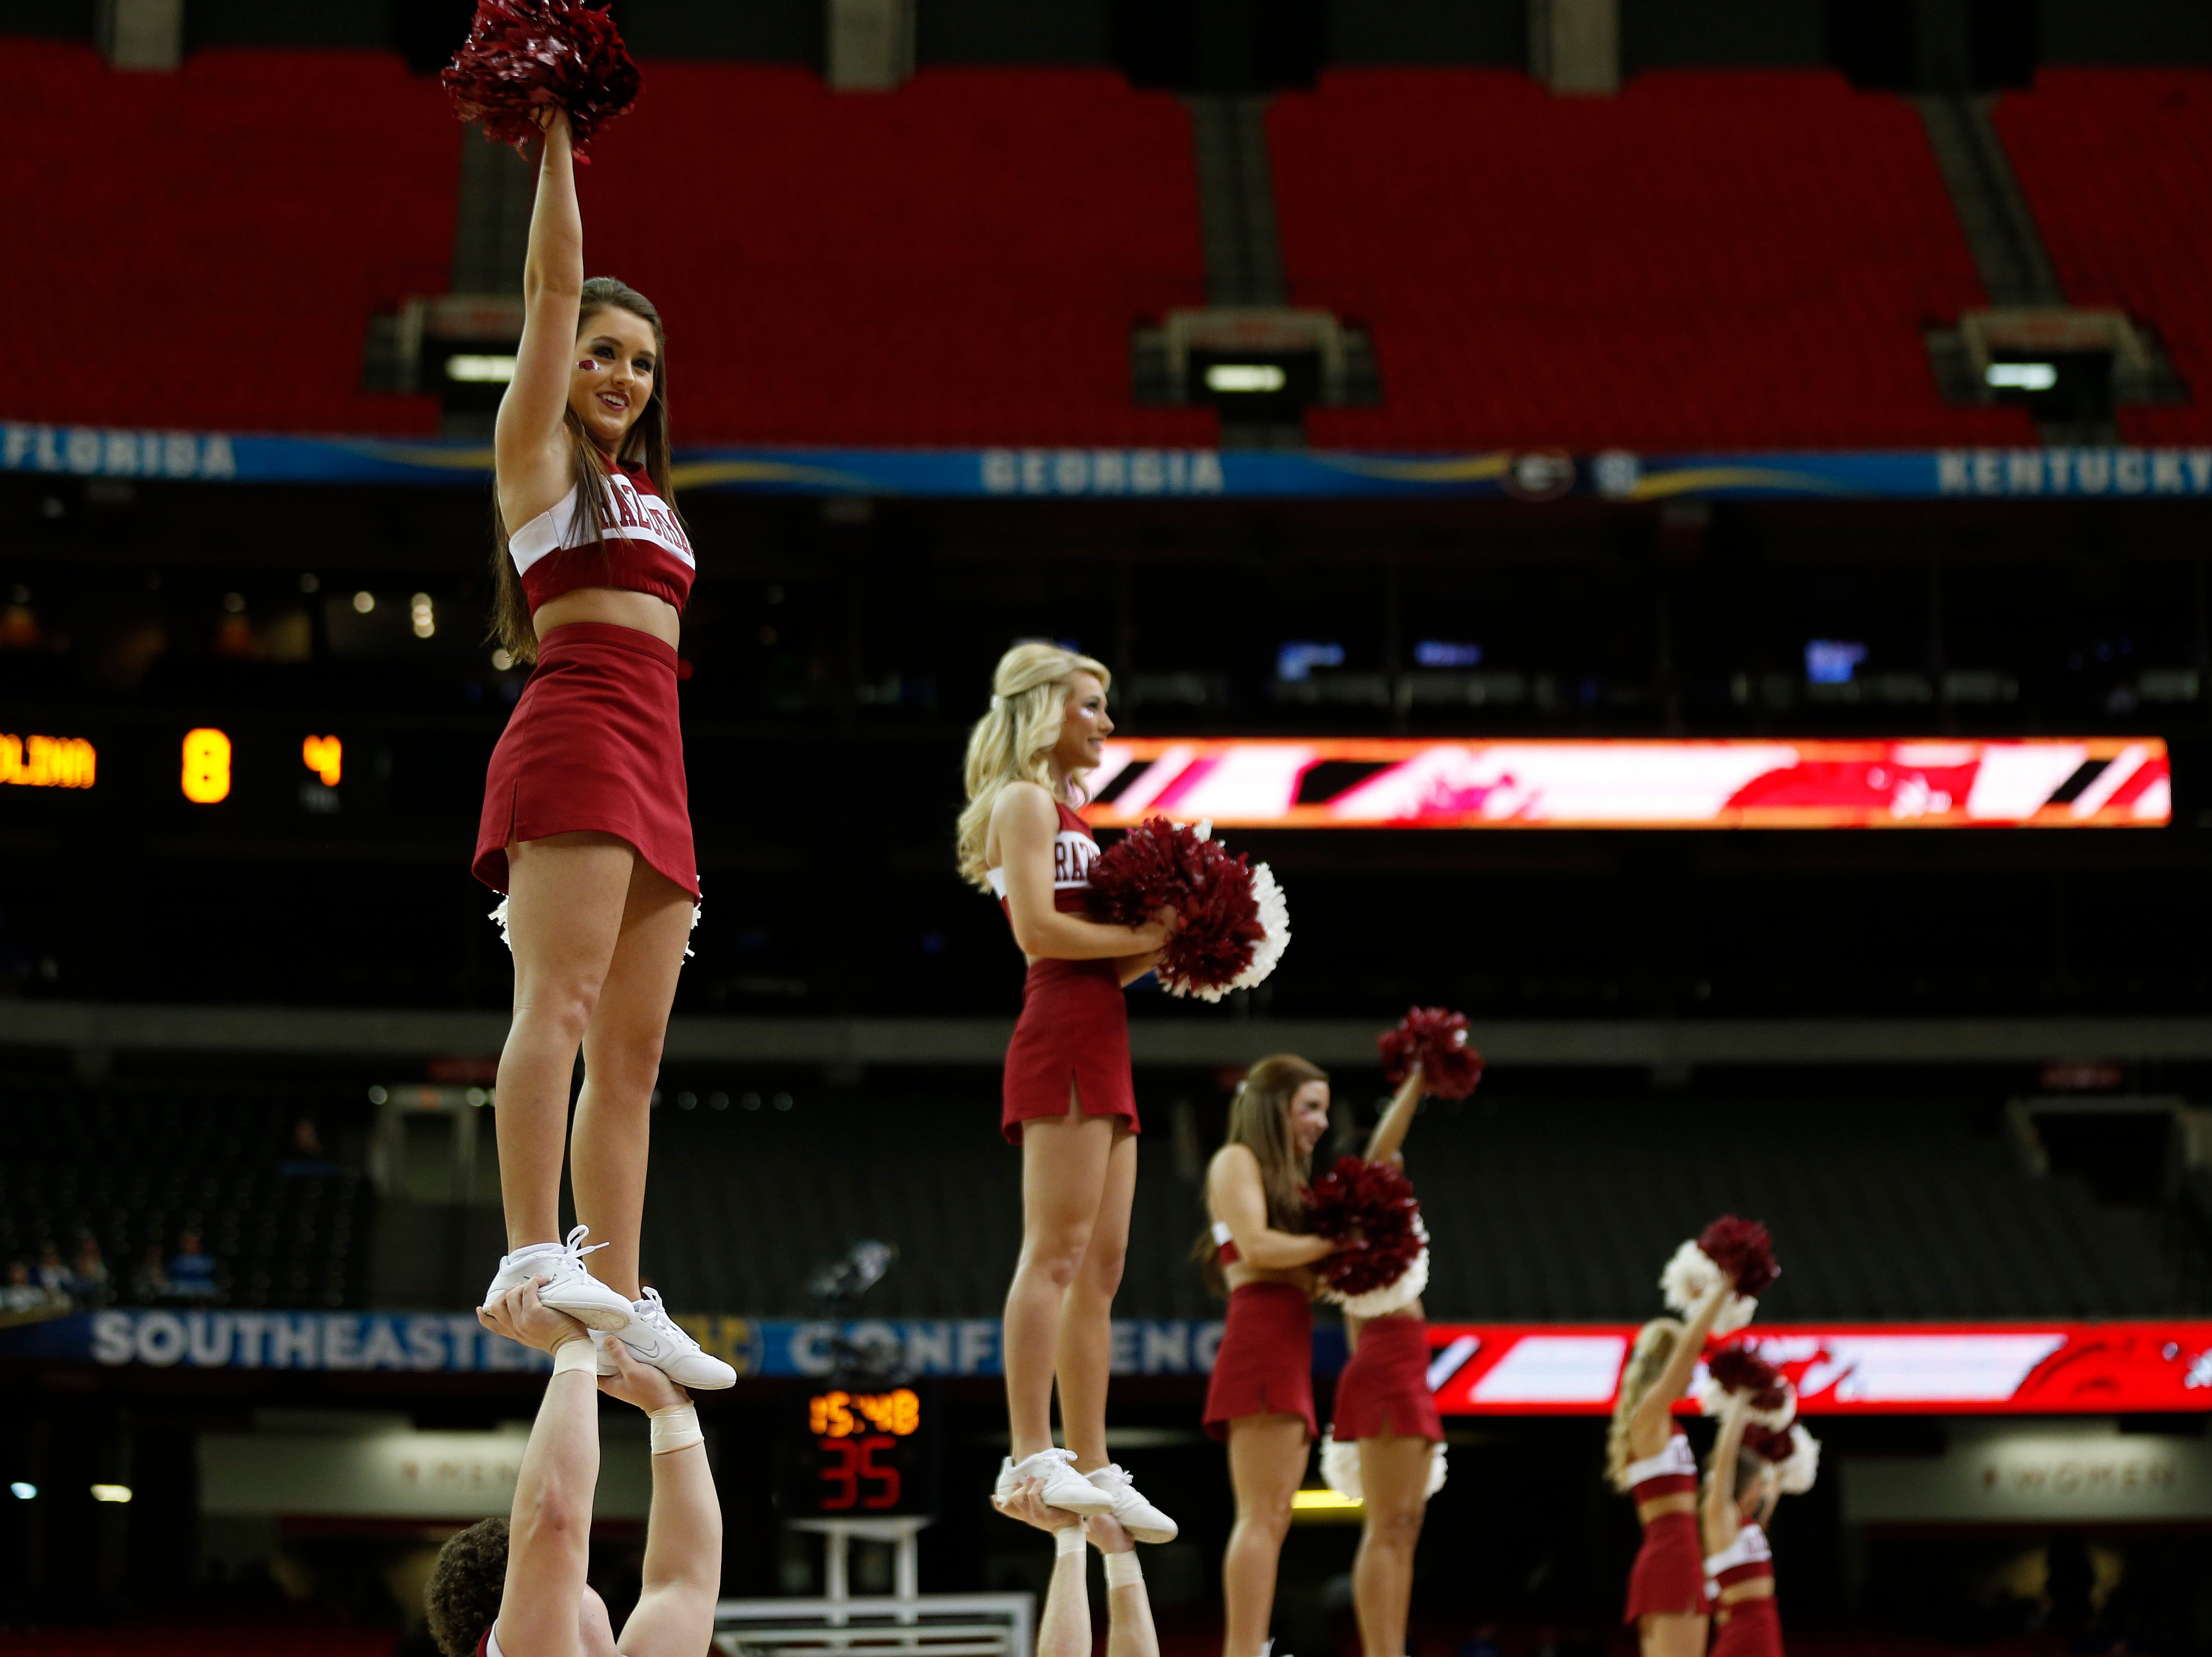 Arkansas cheerleaders perform during the first half of an NCAA college basketball game against the South Carolina in the second round of the Southeastern Conference men's tournament, Thursday, March 13, 2014, in Atlanta. (AP Photo/John Bazemore)